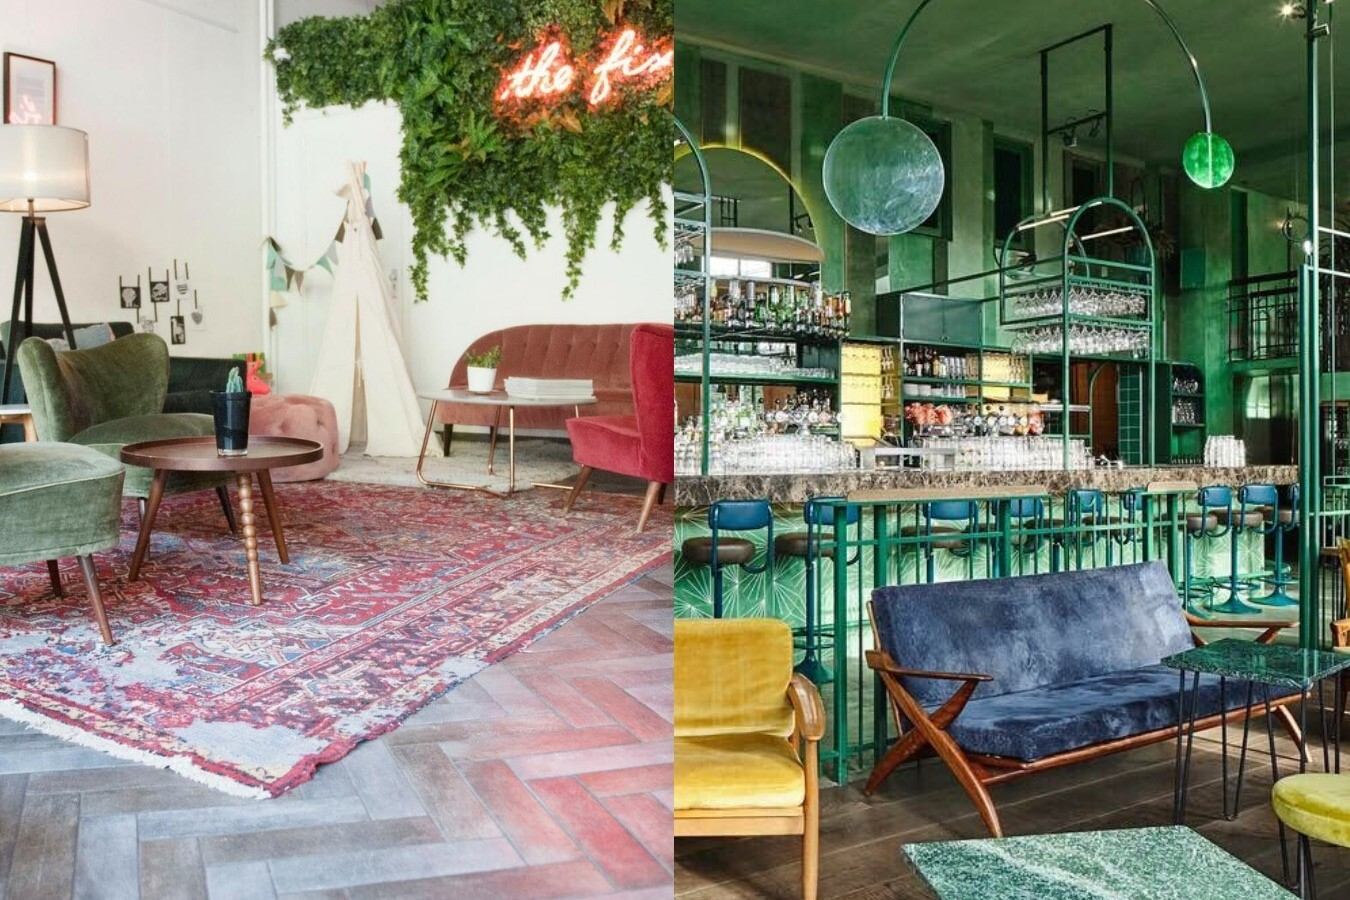 8 hipste hotspots met een tropisch 'urban jungle' interieur